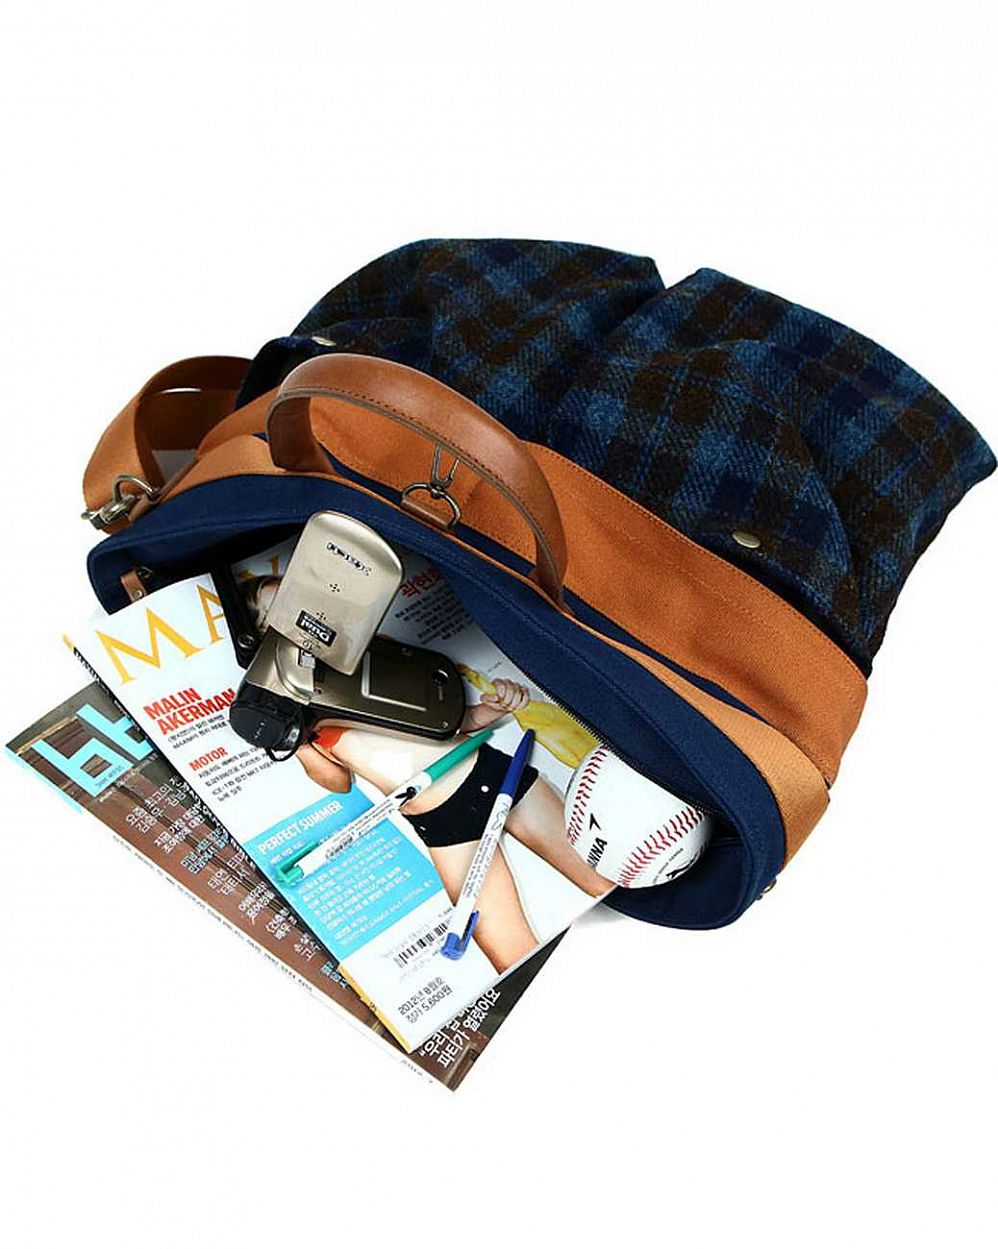 Сумка The earth Company Harris Tweed  (England) Helmet bag blue купить в интернете